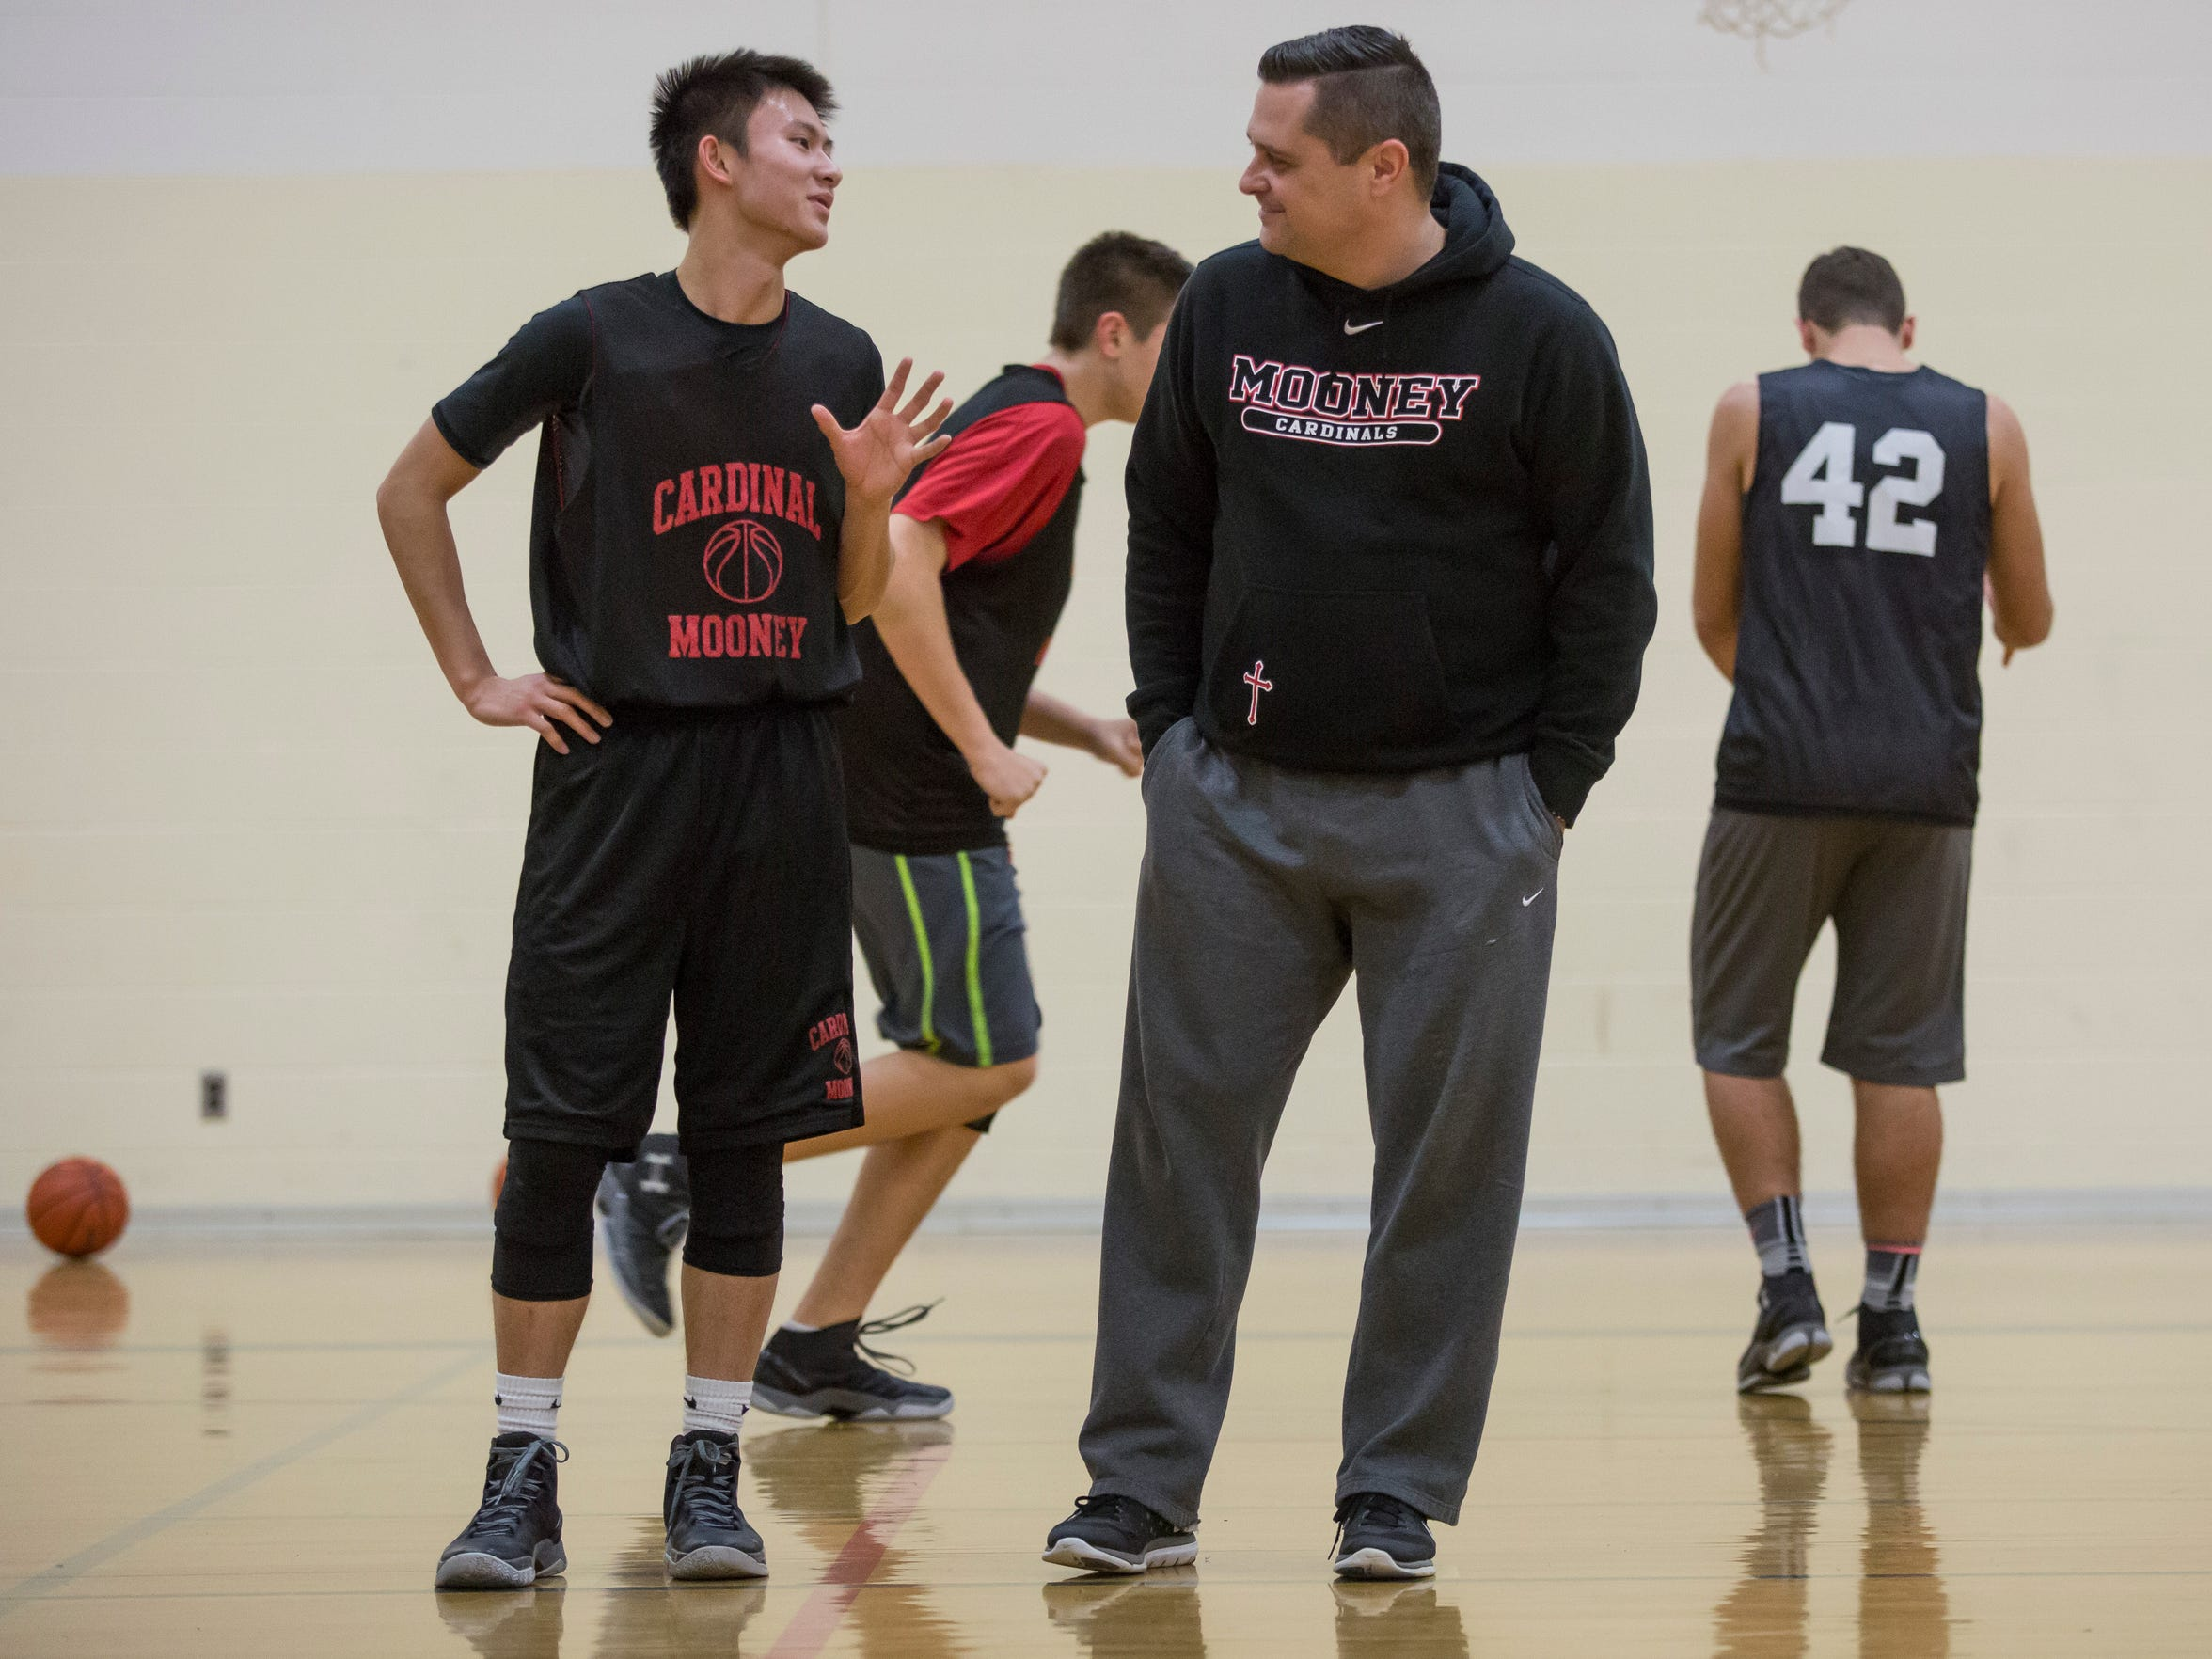 Senior Chris Xuan, 19, chats with coach Mike McAndrews during basketball practice Wednesday, Jan. 27, 2016 at Cardinal Mooney High School in Marine City. Xuan is an exchange student from Shenzhen, China.